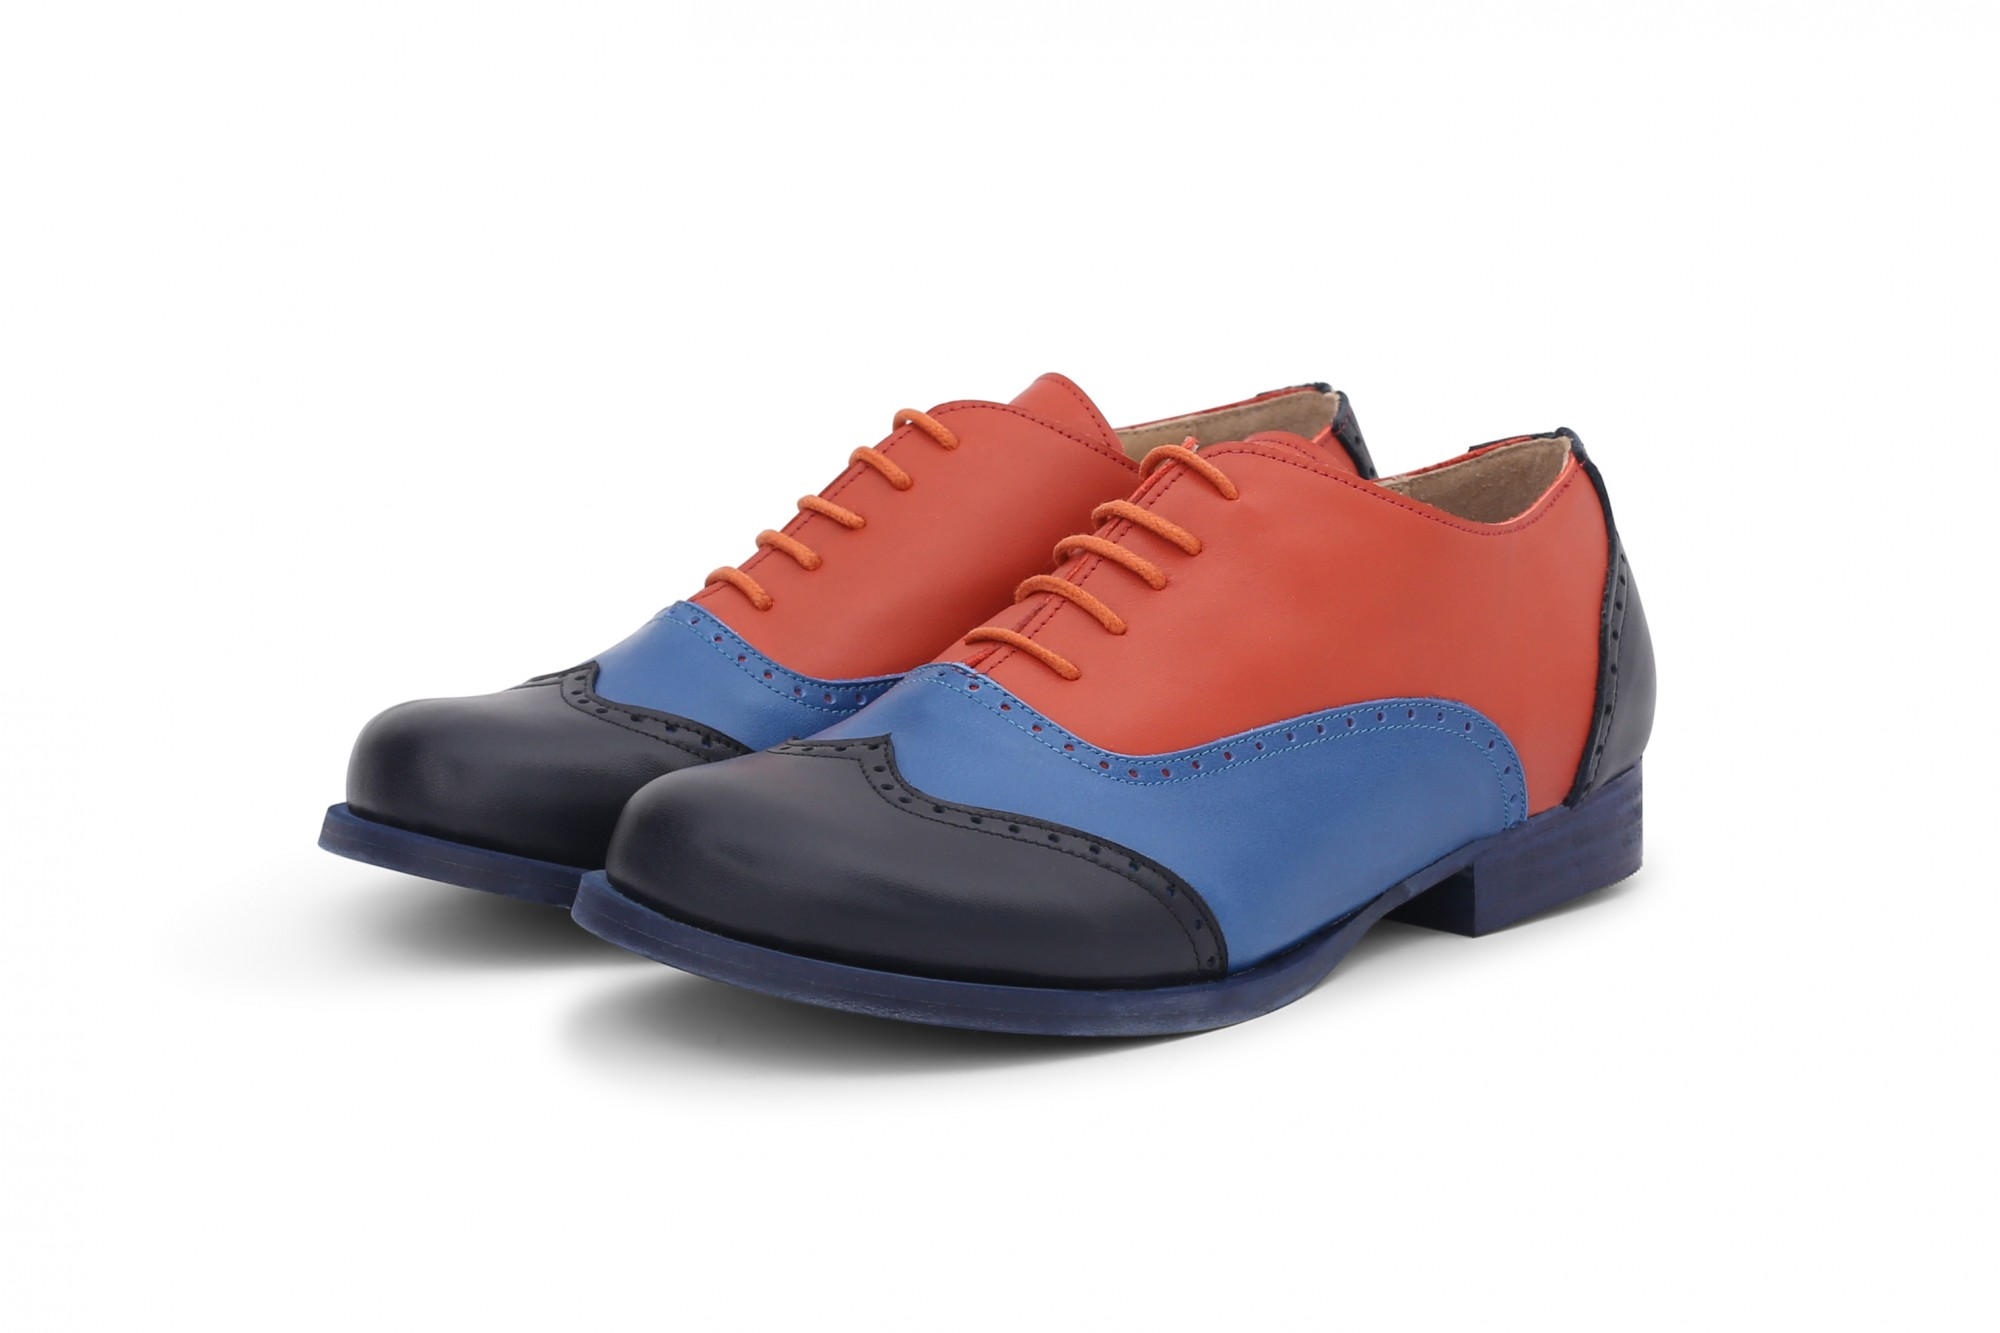 b85c0c4e0f Colorful oxford shoes. Women's oxford shoes in blue and orange leather